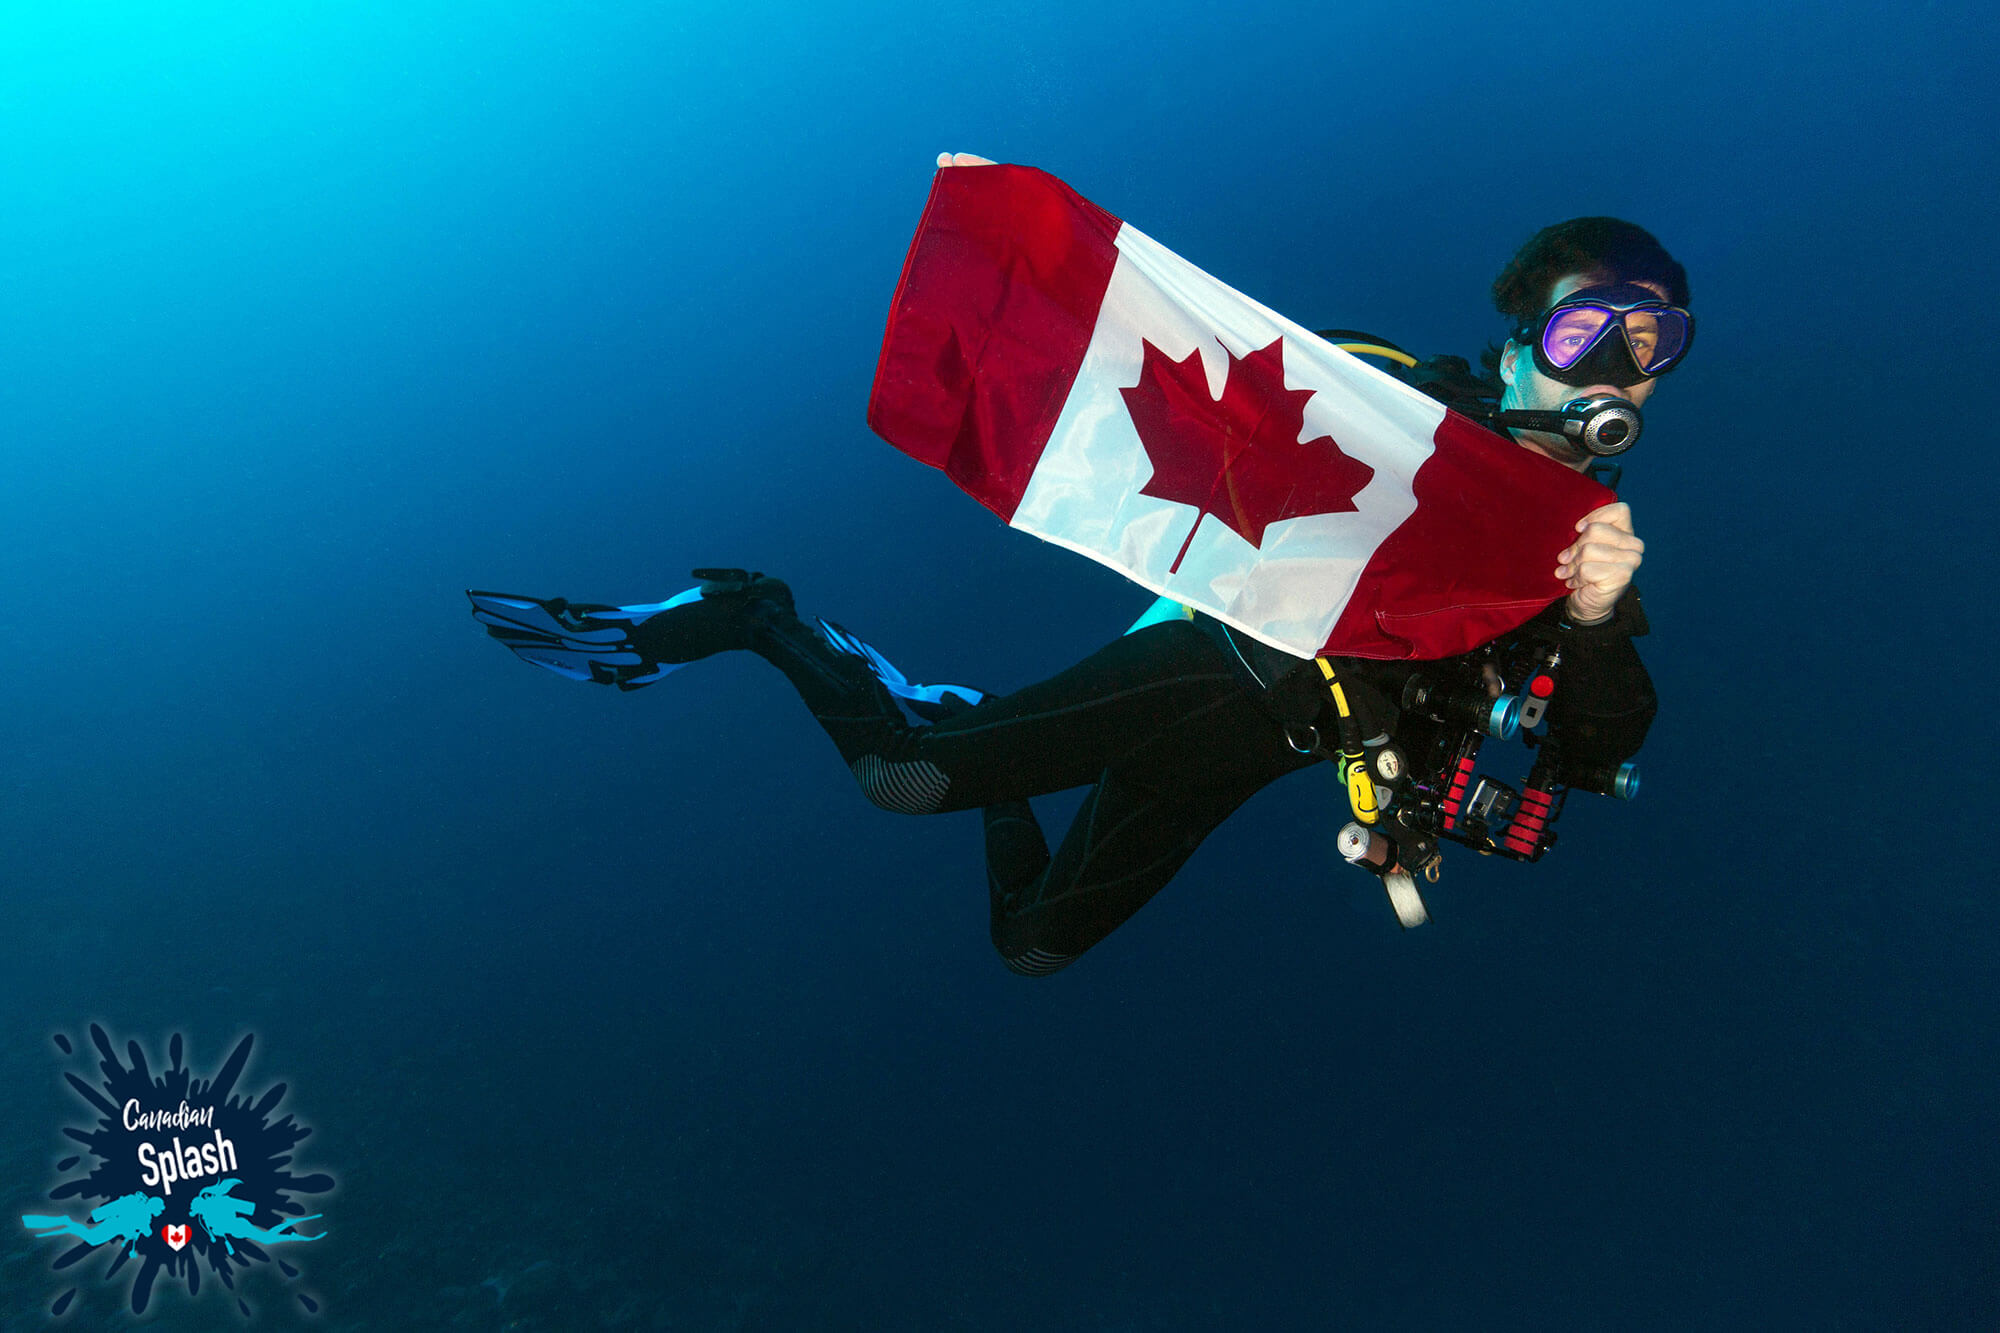 Joey Scuba Diving with a Canadian Flag for Canadian Splash